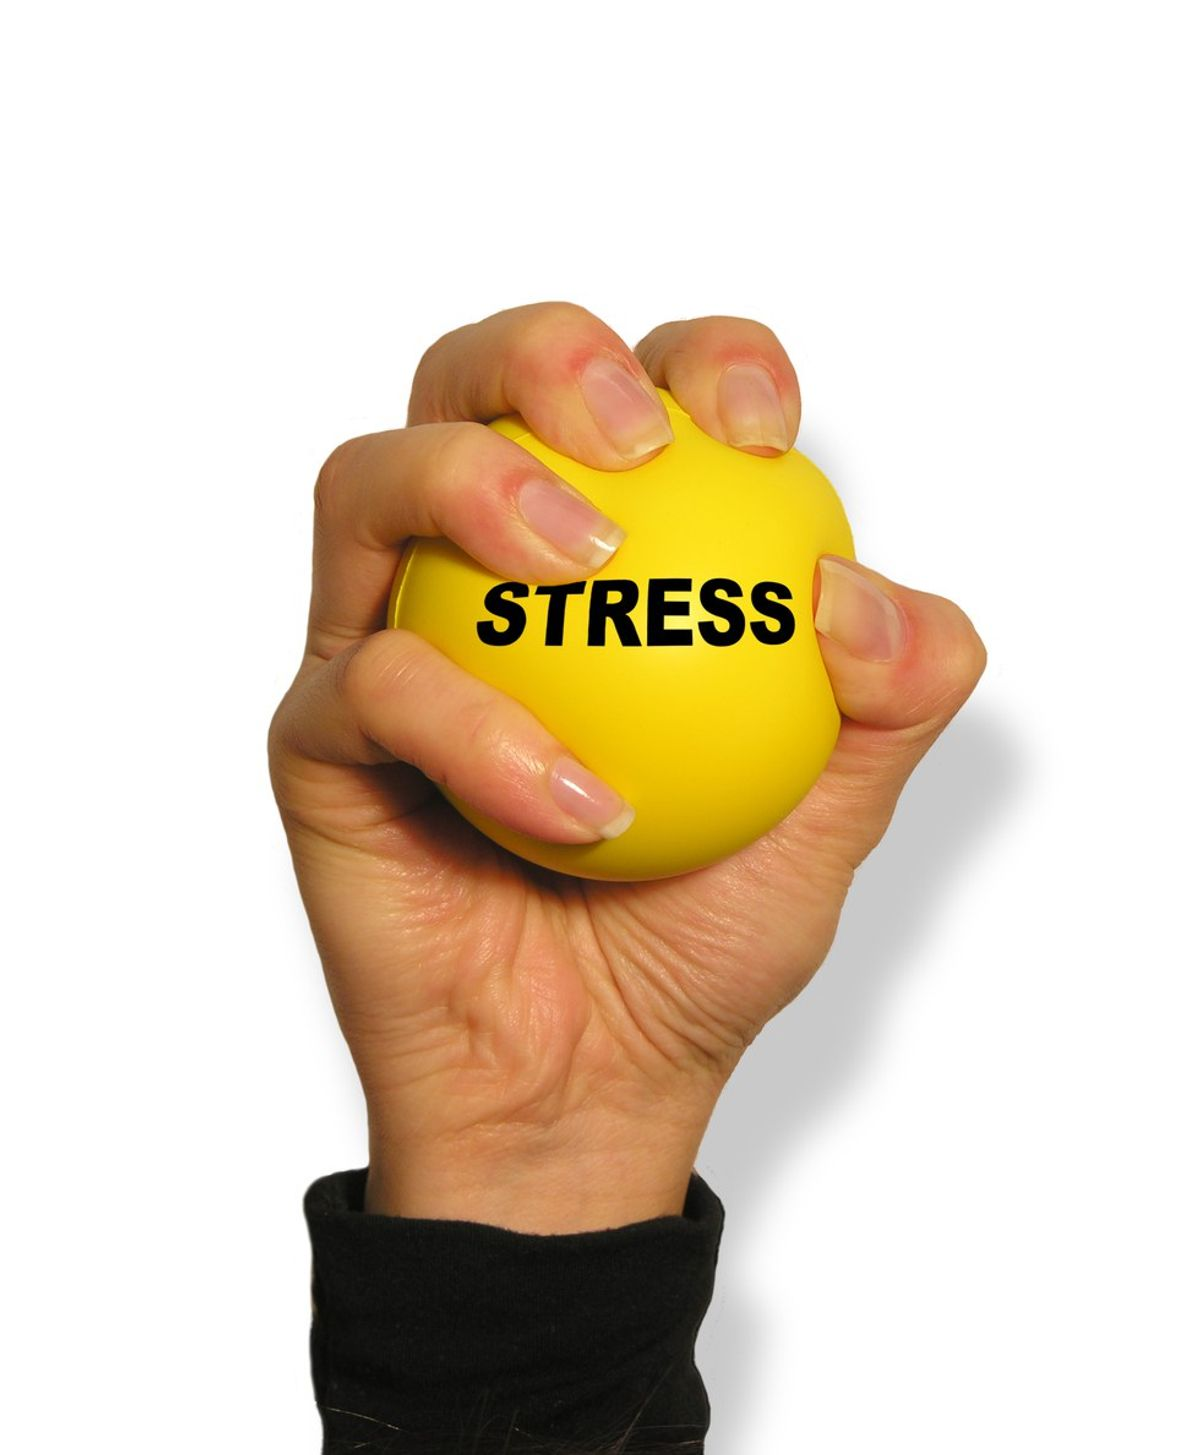 11 Ways To Deal With Stress